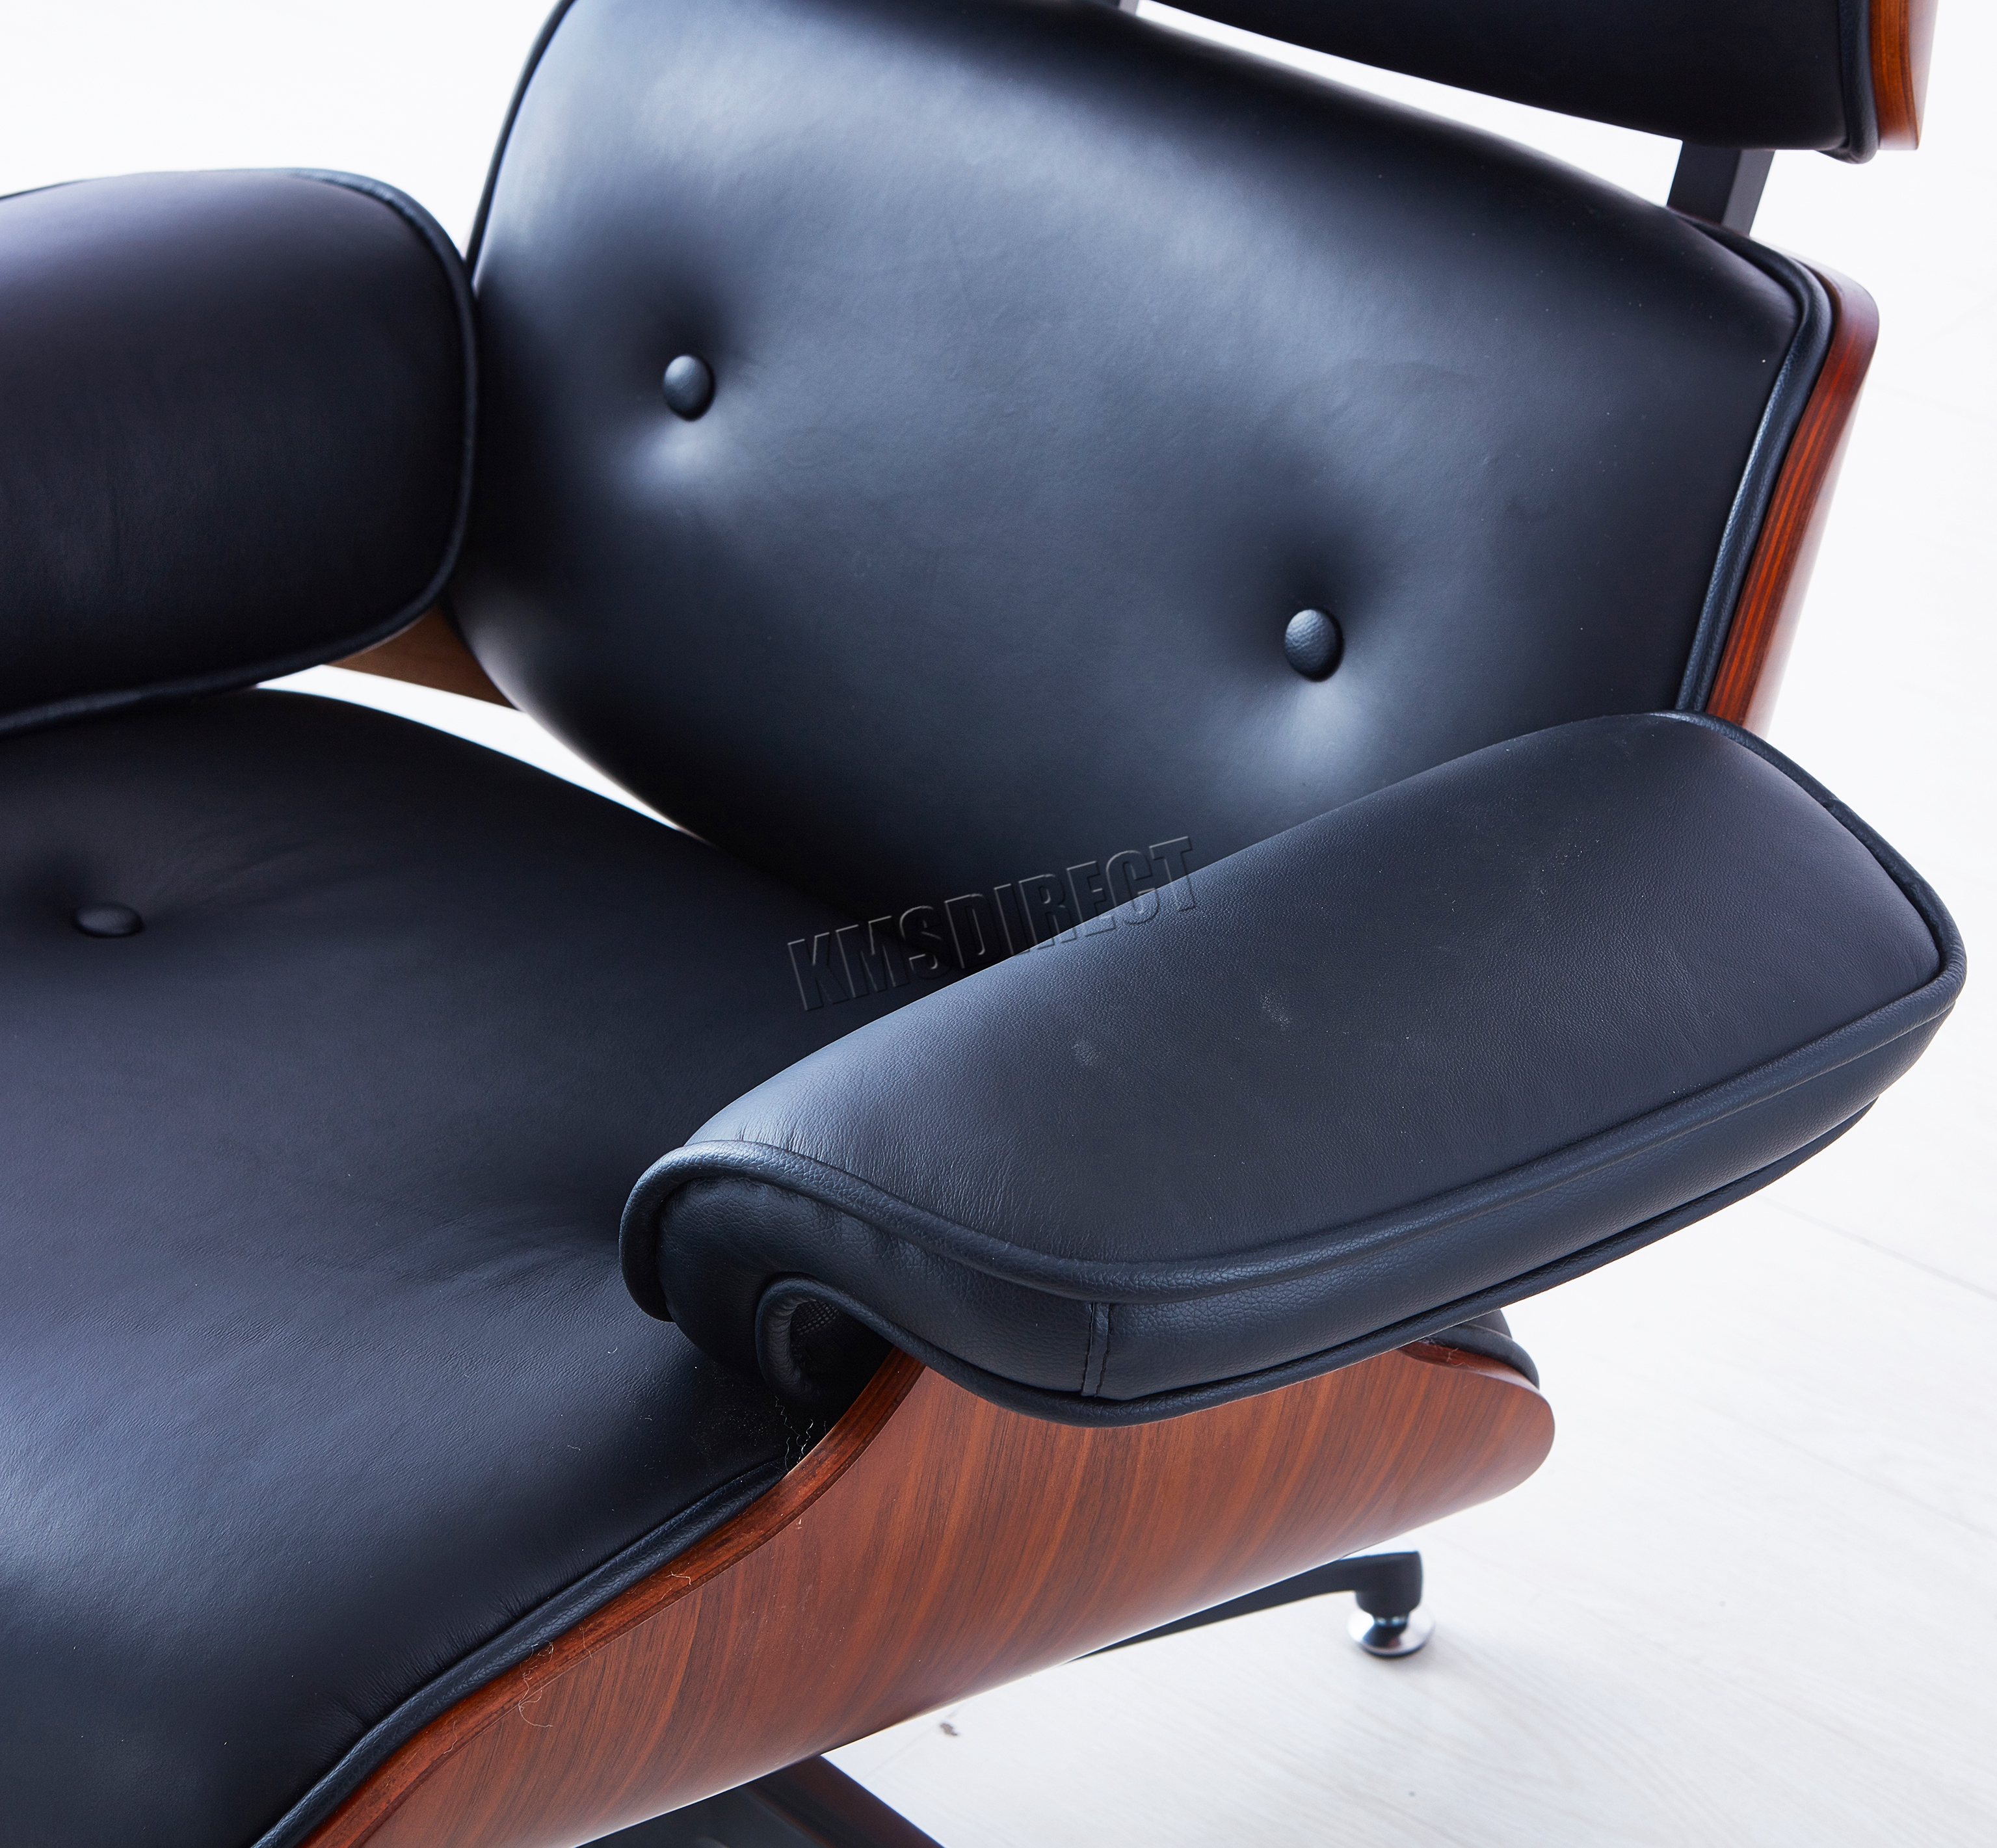 Sentinel FoxHunter Luxury Lounge Chair And Ottoman Genuine Leather Recliner Seat Black & FoxHunter Luxury Lounge Chair And Ottoman Genuine Leather Recliner ... islam-shia.org